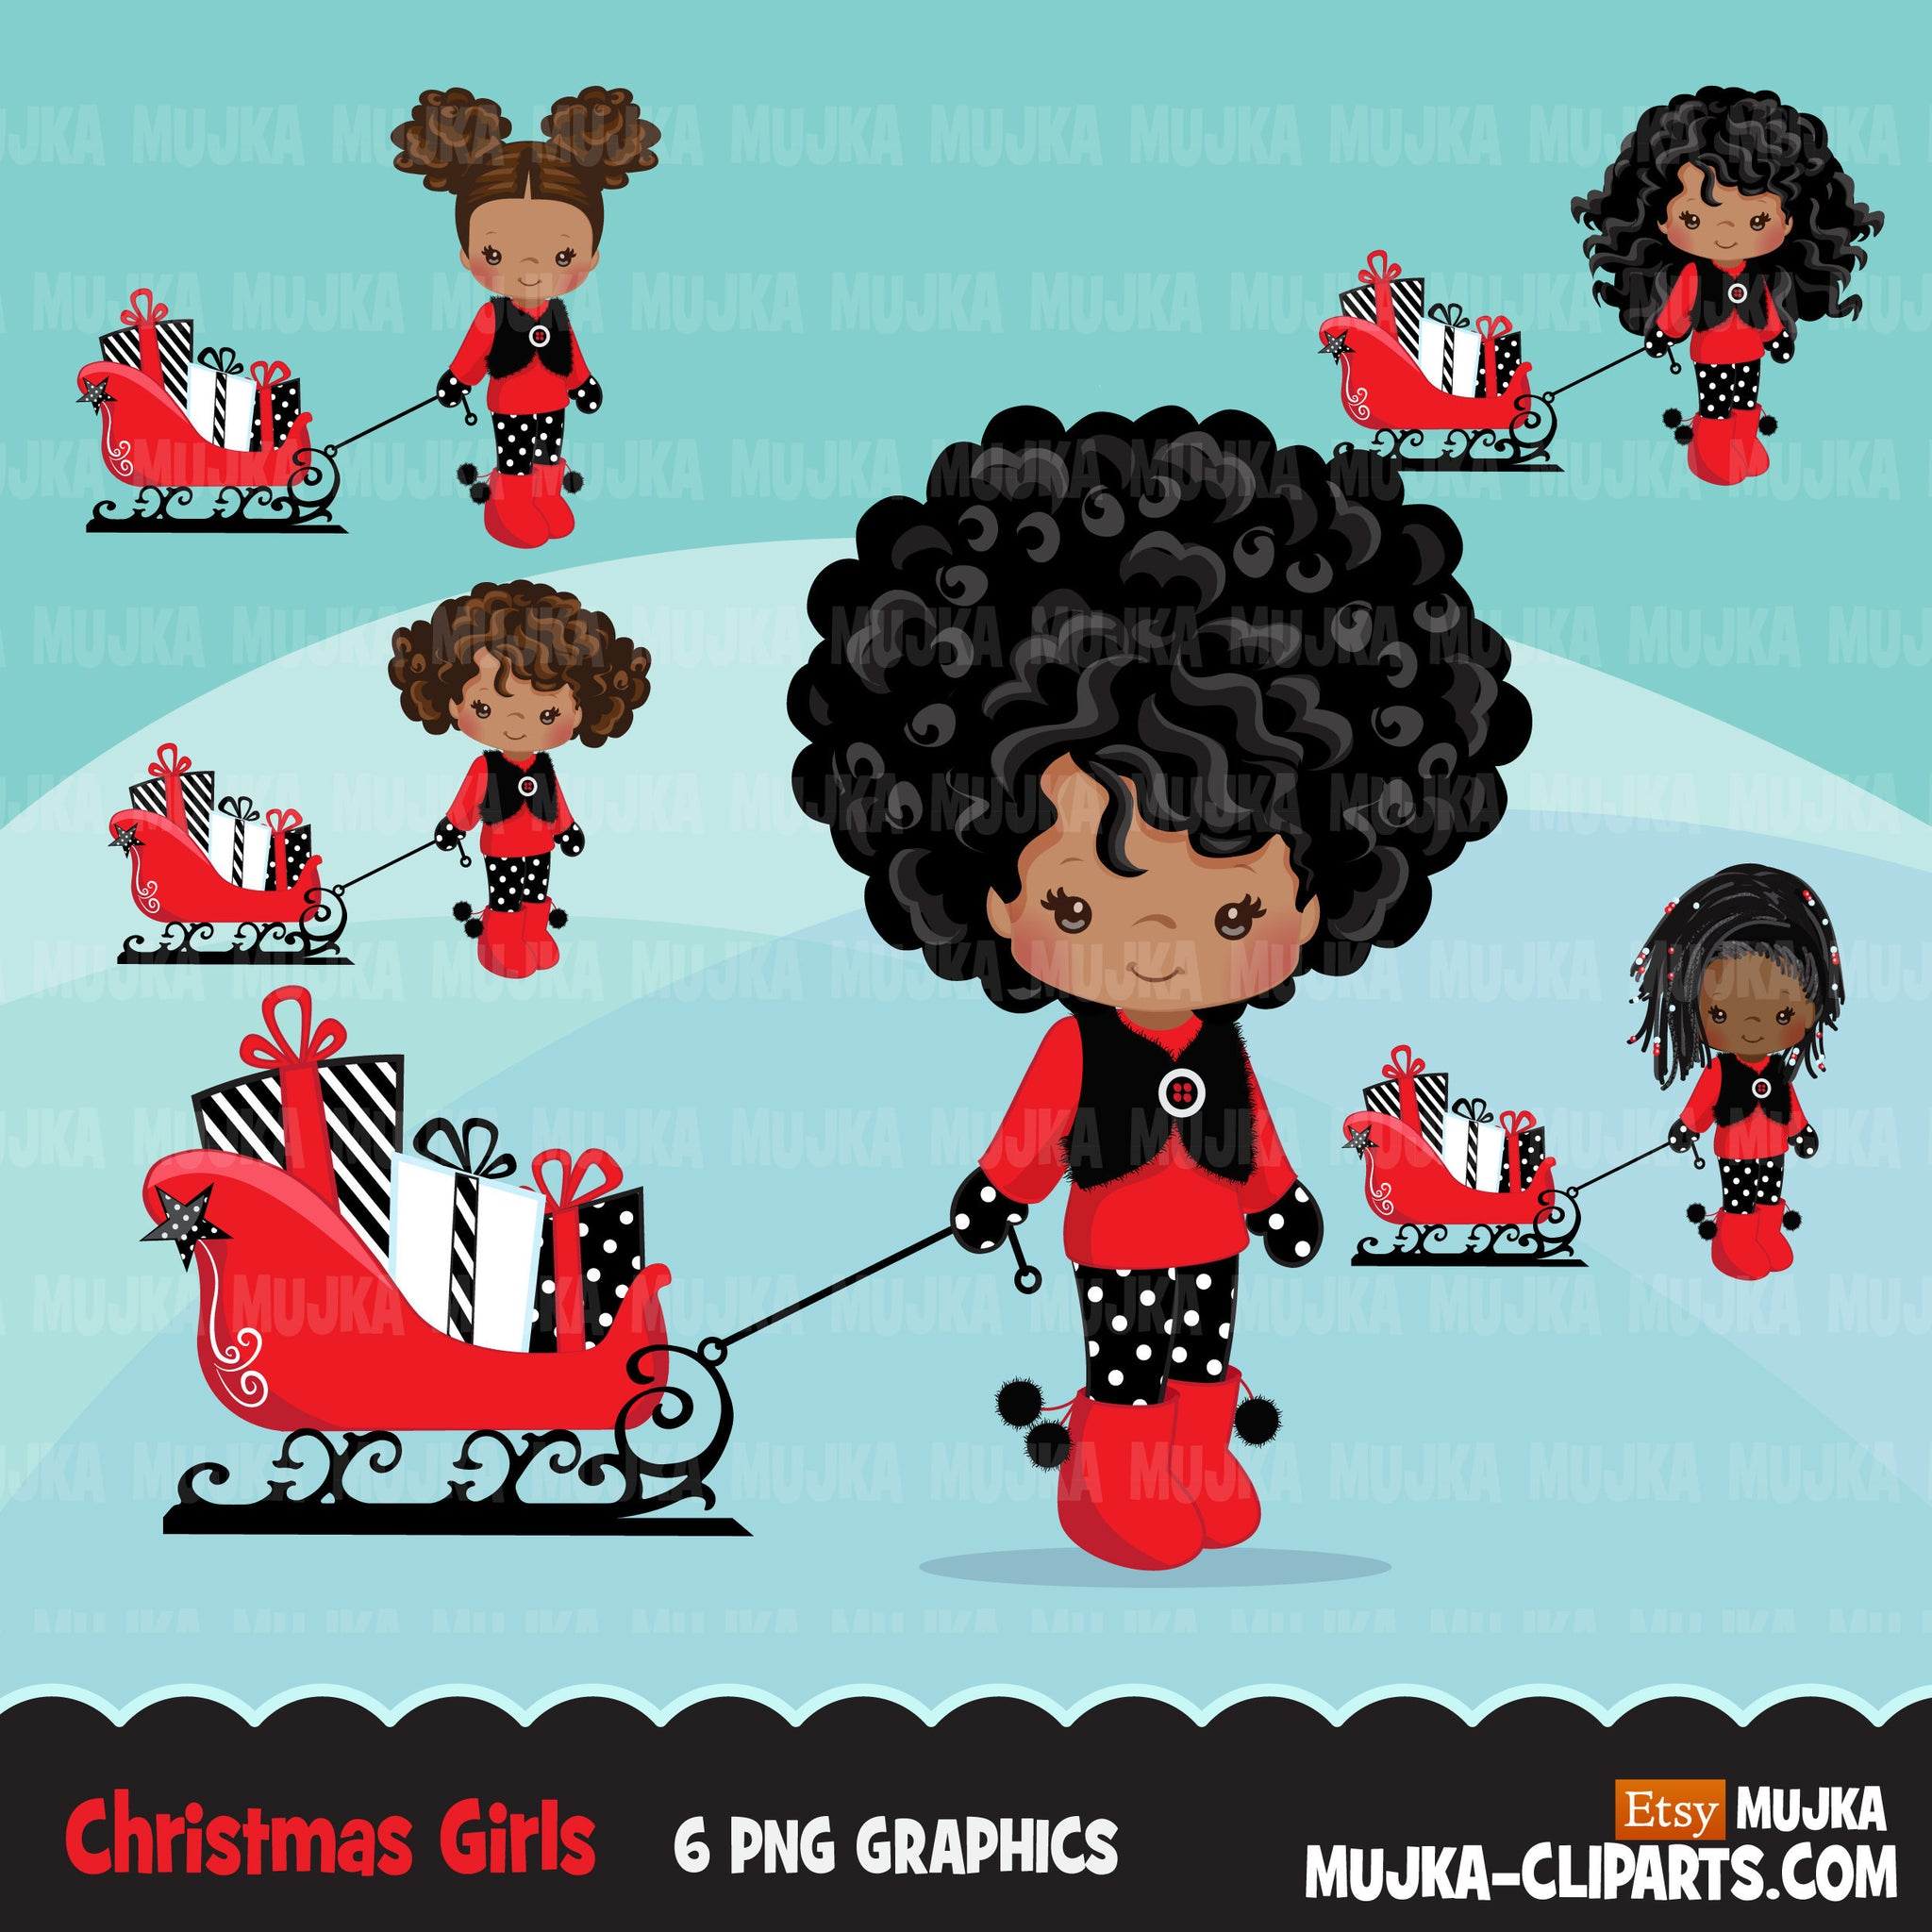 Christmas Clipart, Black girl with Sled, Christmas kids, Noel graphics, Holiday characters, png sublimation clip art